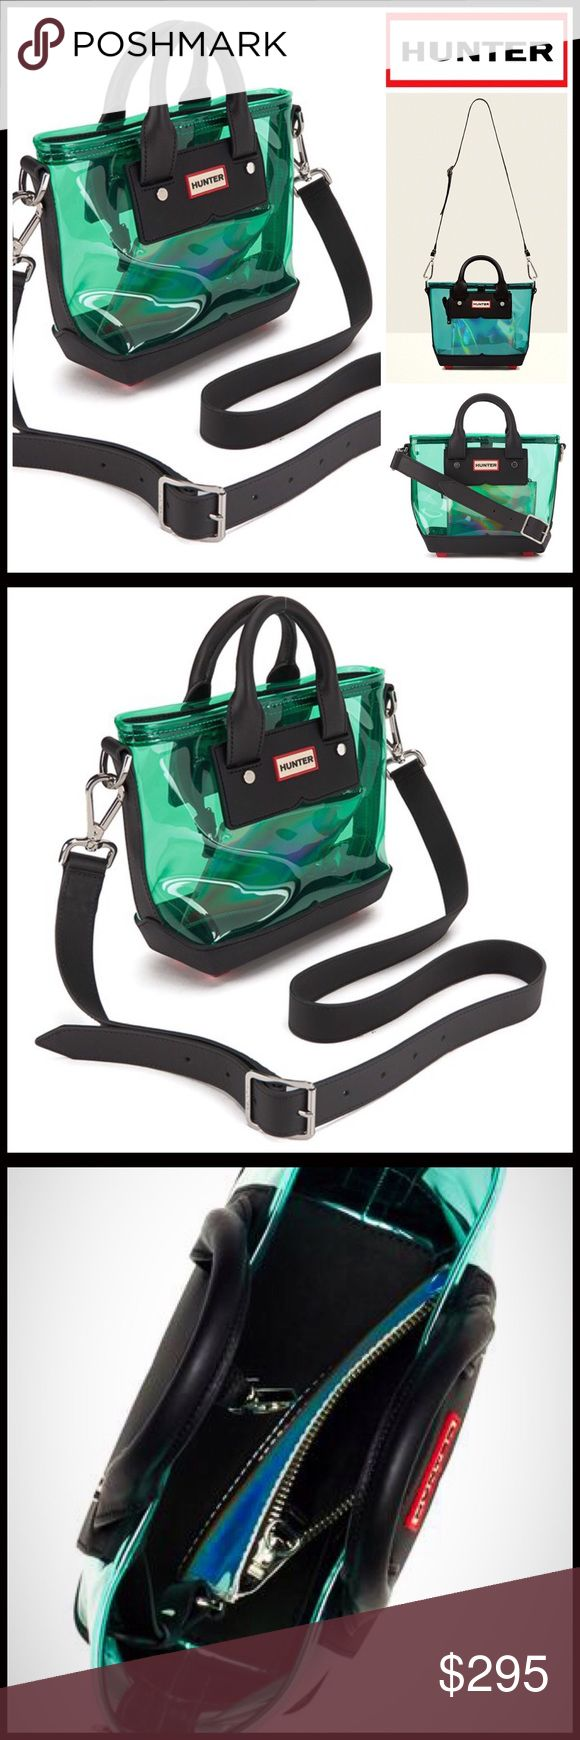 """HUNTER Original Tote Crossbody 💟NEW WITH TAGS💟   HUNTER Original Mini Tote Crossbody  * Exterior PVC, leather & rubber construction w/contrast feet  * Dual leather handles, top zip closure, & detachable/adjustable strap; Dust Bag included   * Interior wall zip pocket  * Approx. 8""""H x 10.5""""W x 3""""D, 3.5"""" handle drop, 20-24"""" strap drop  * Hunter logo; Silver-tone details.  * A firm structure bottom Material:PVC, Leather, rubber, & fabric Color- Clear green, black Saddle 🚫No Trades🚫 ✅ Offers…"""